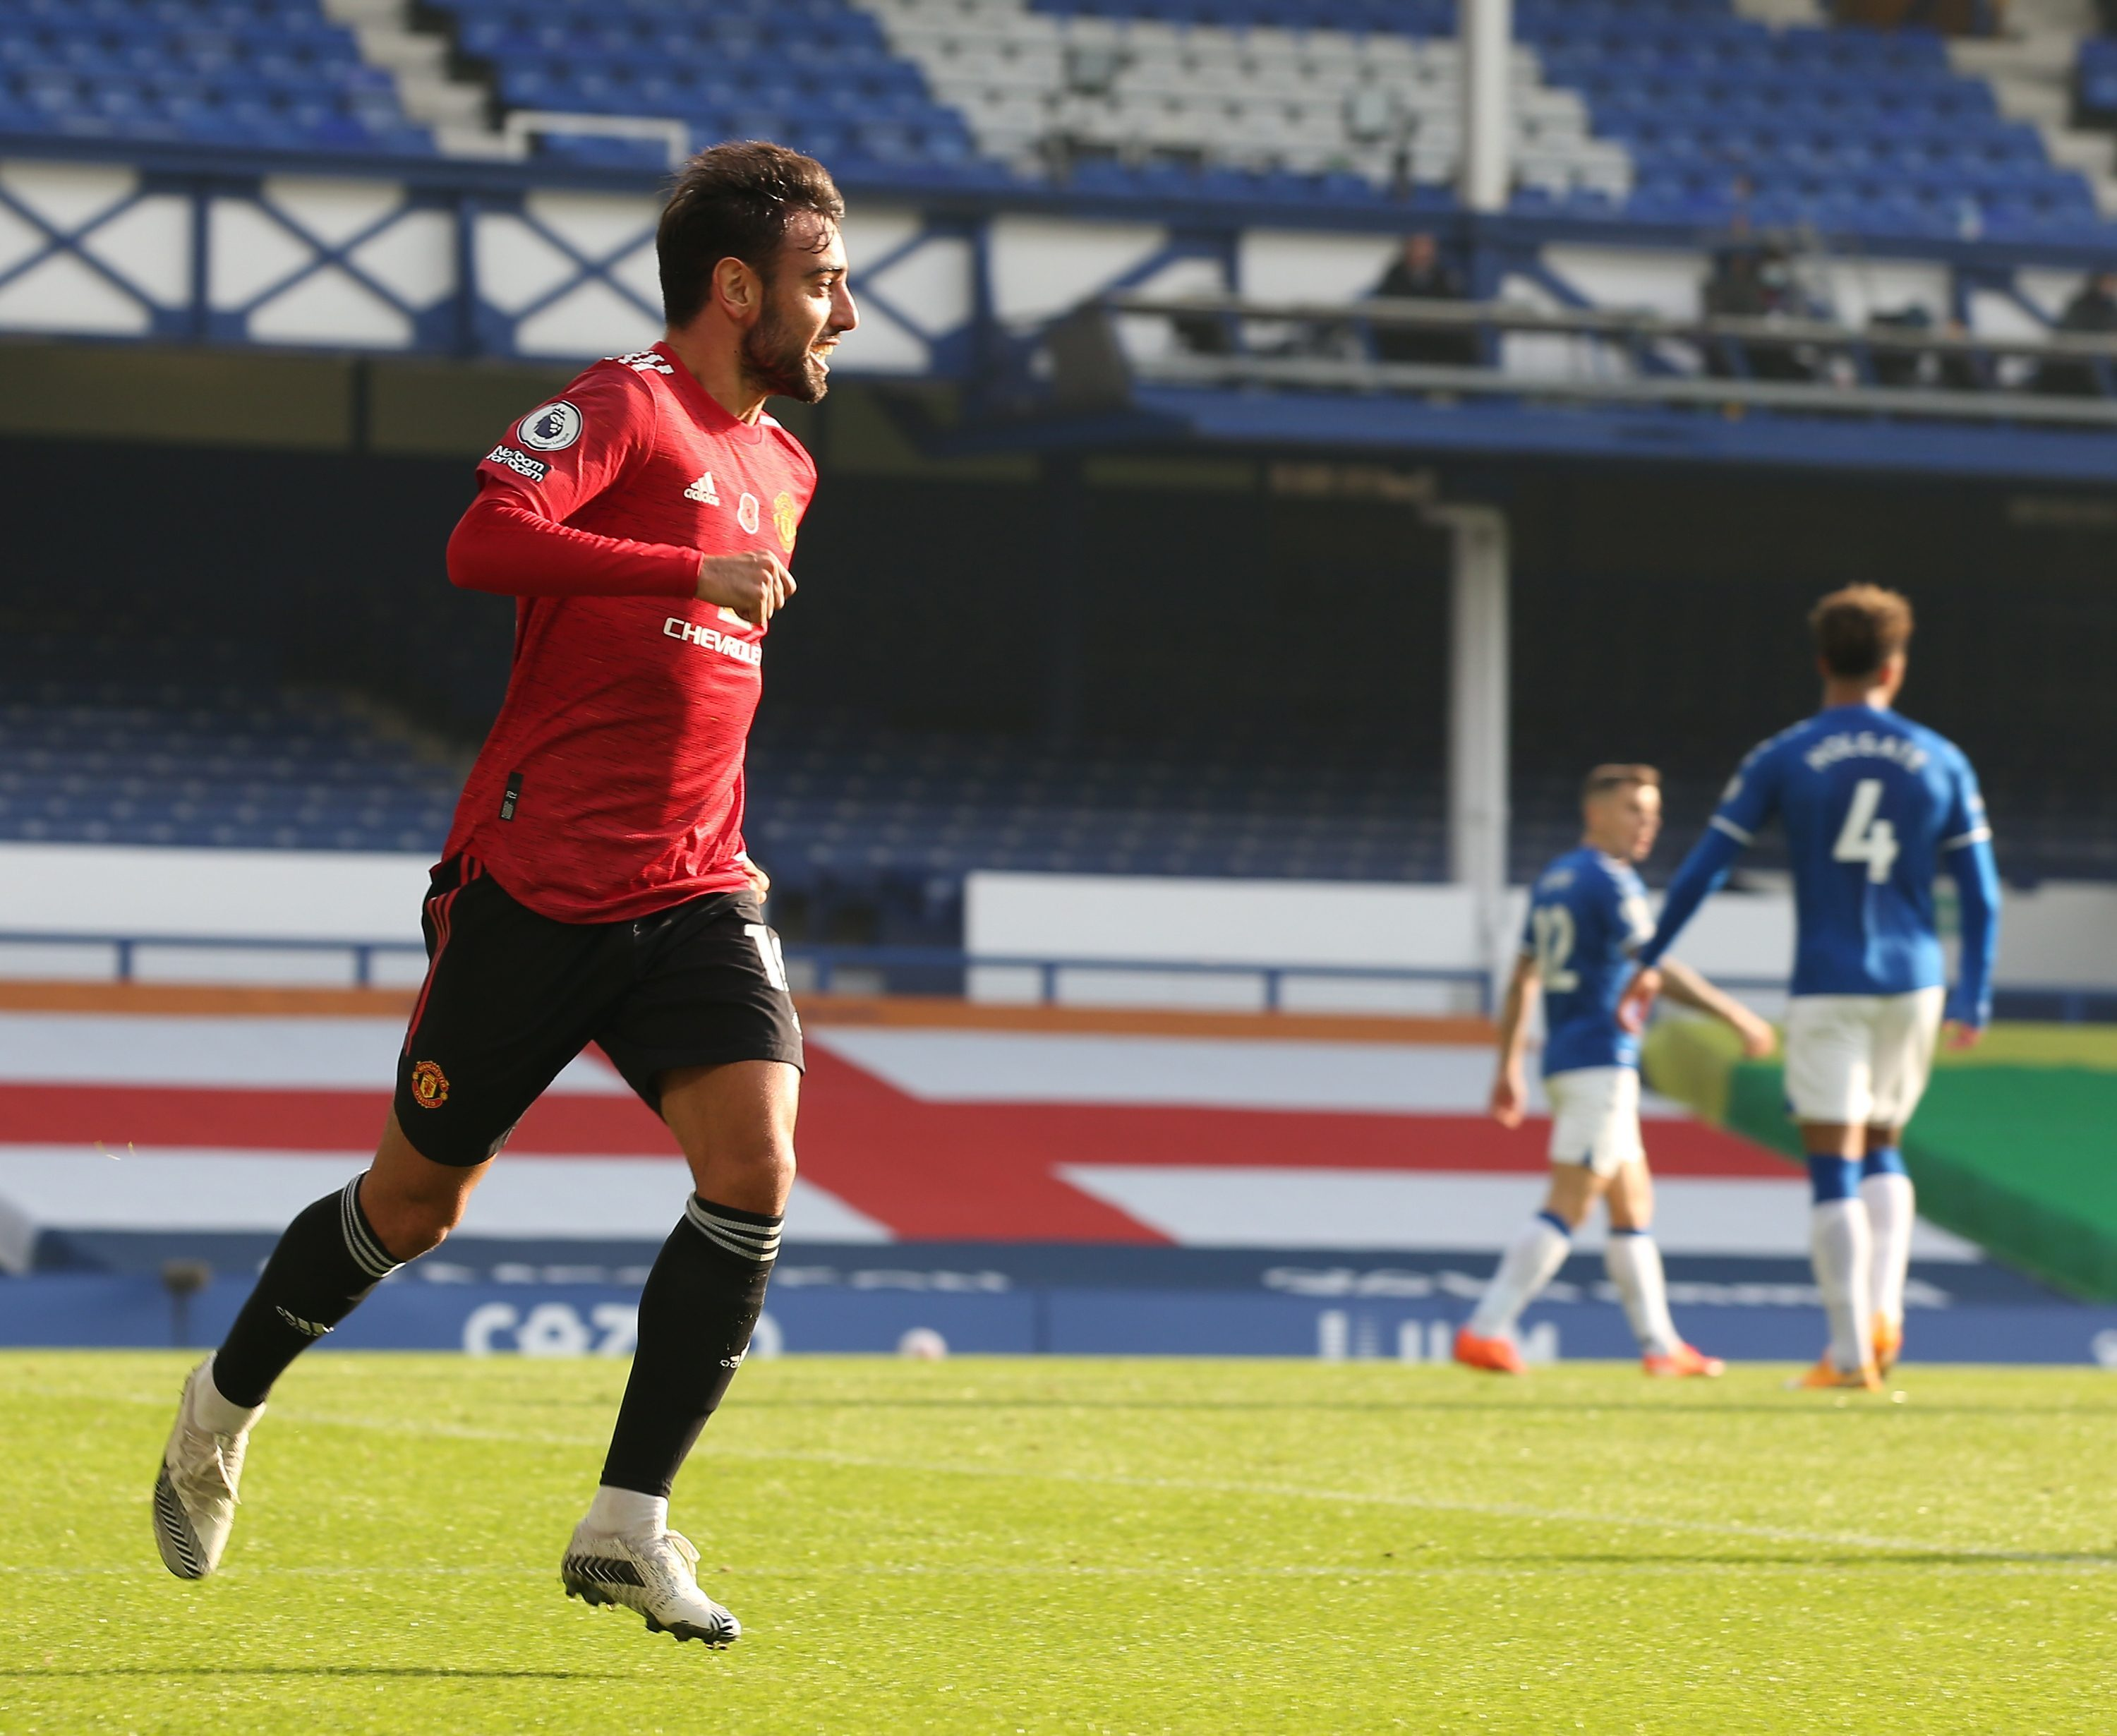 Fernandes was at his best in United's last match, scoring twice and getting an assist in the 3-1 win at Everton